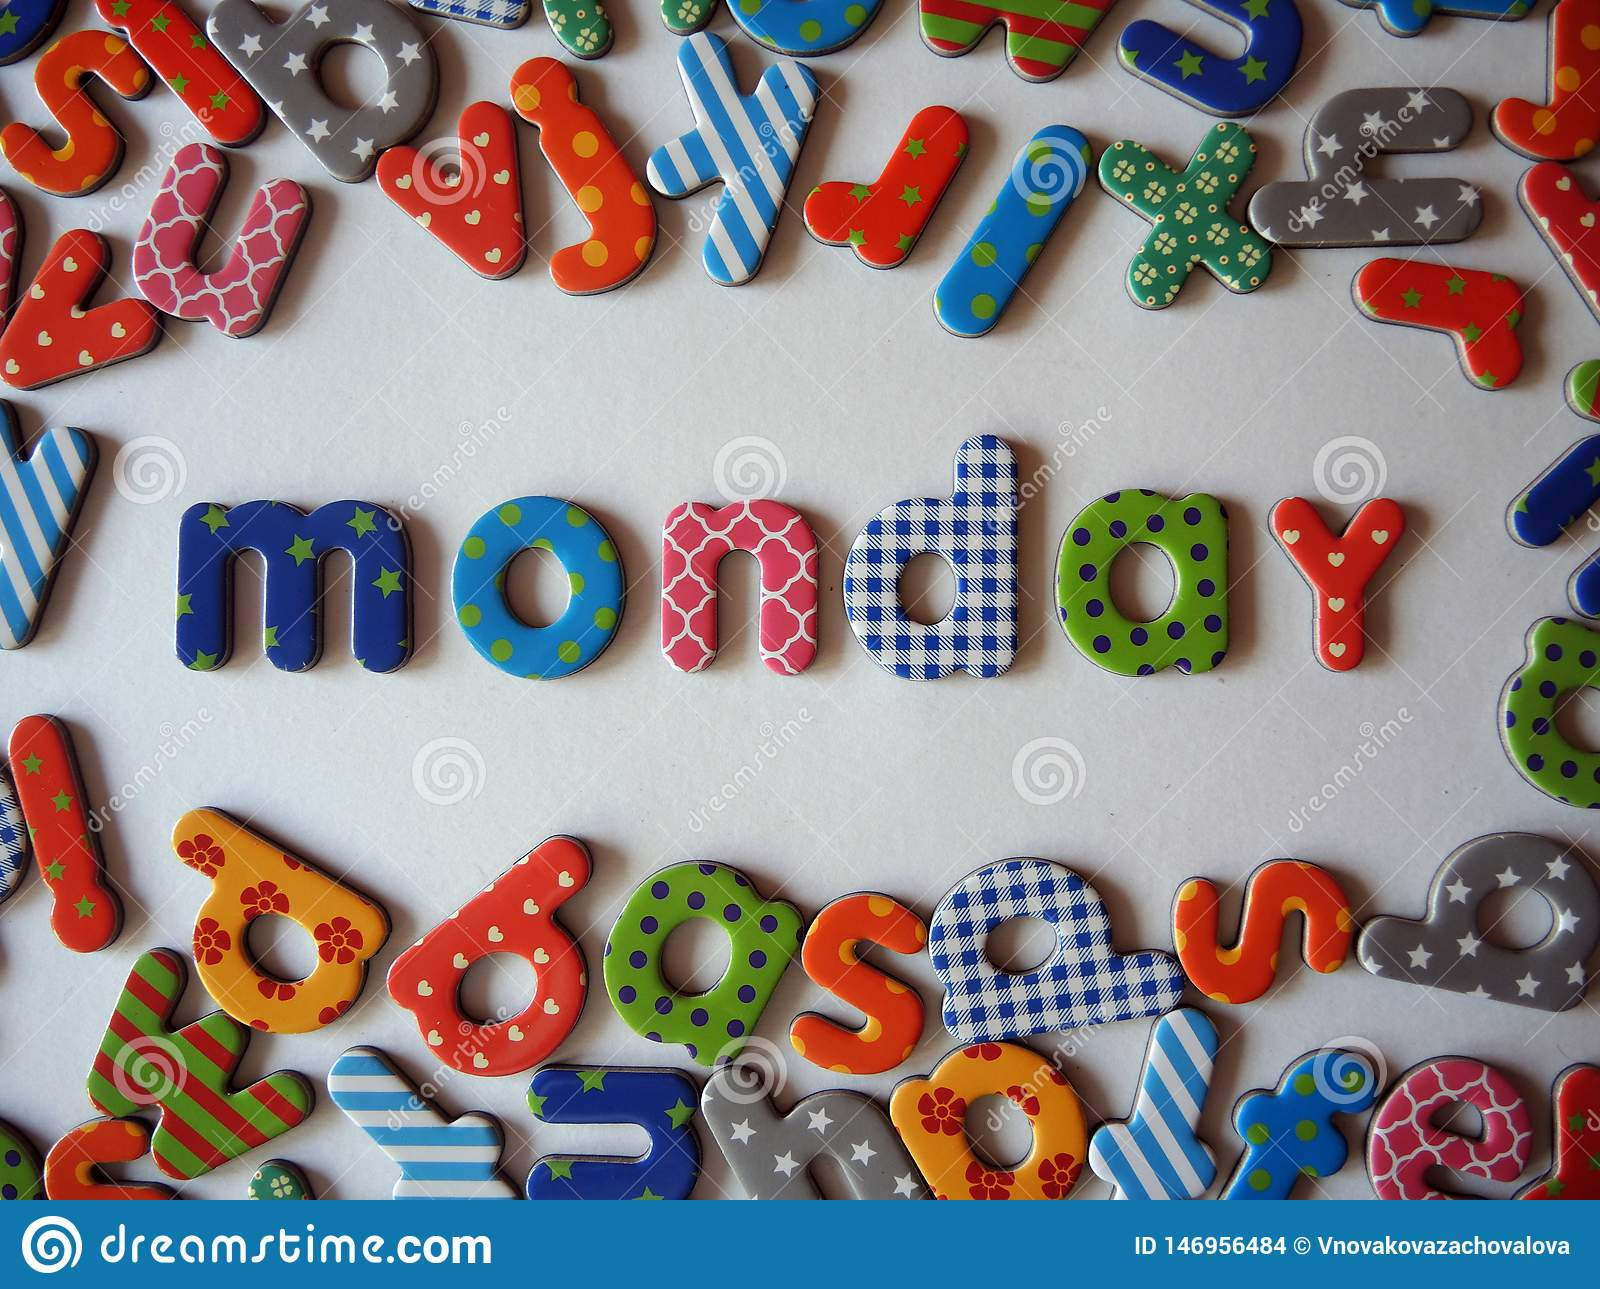 Monday banner with colorful lower case letters